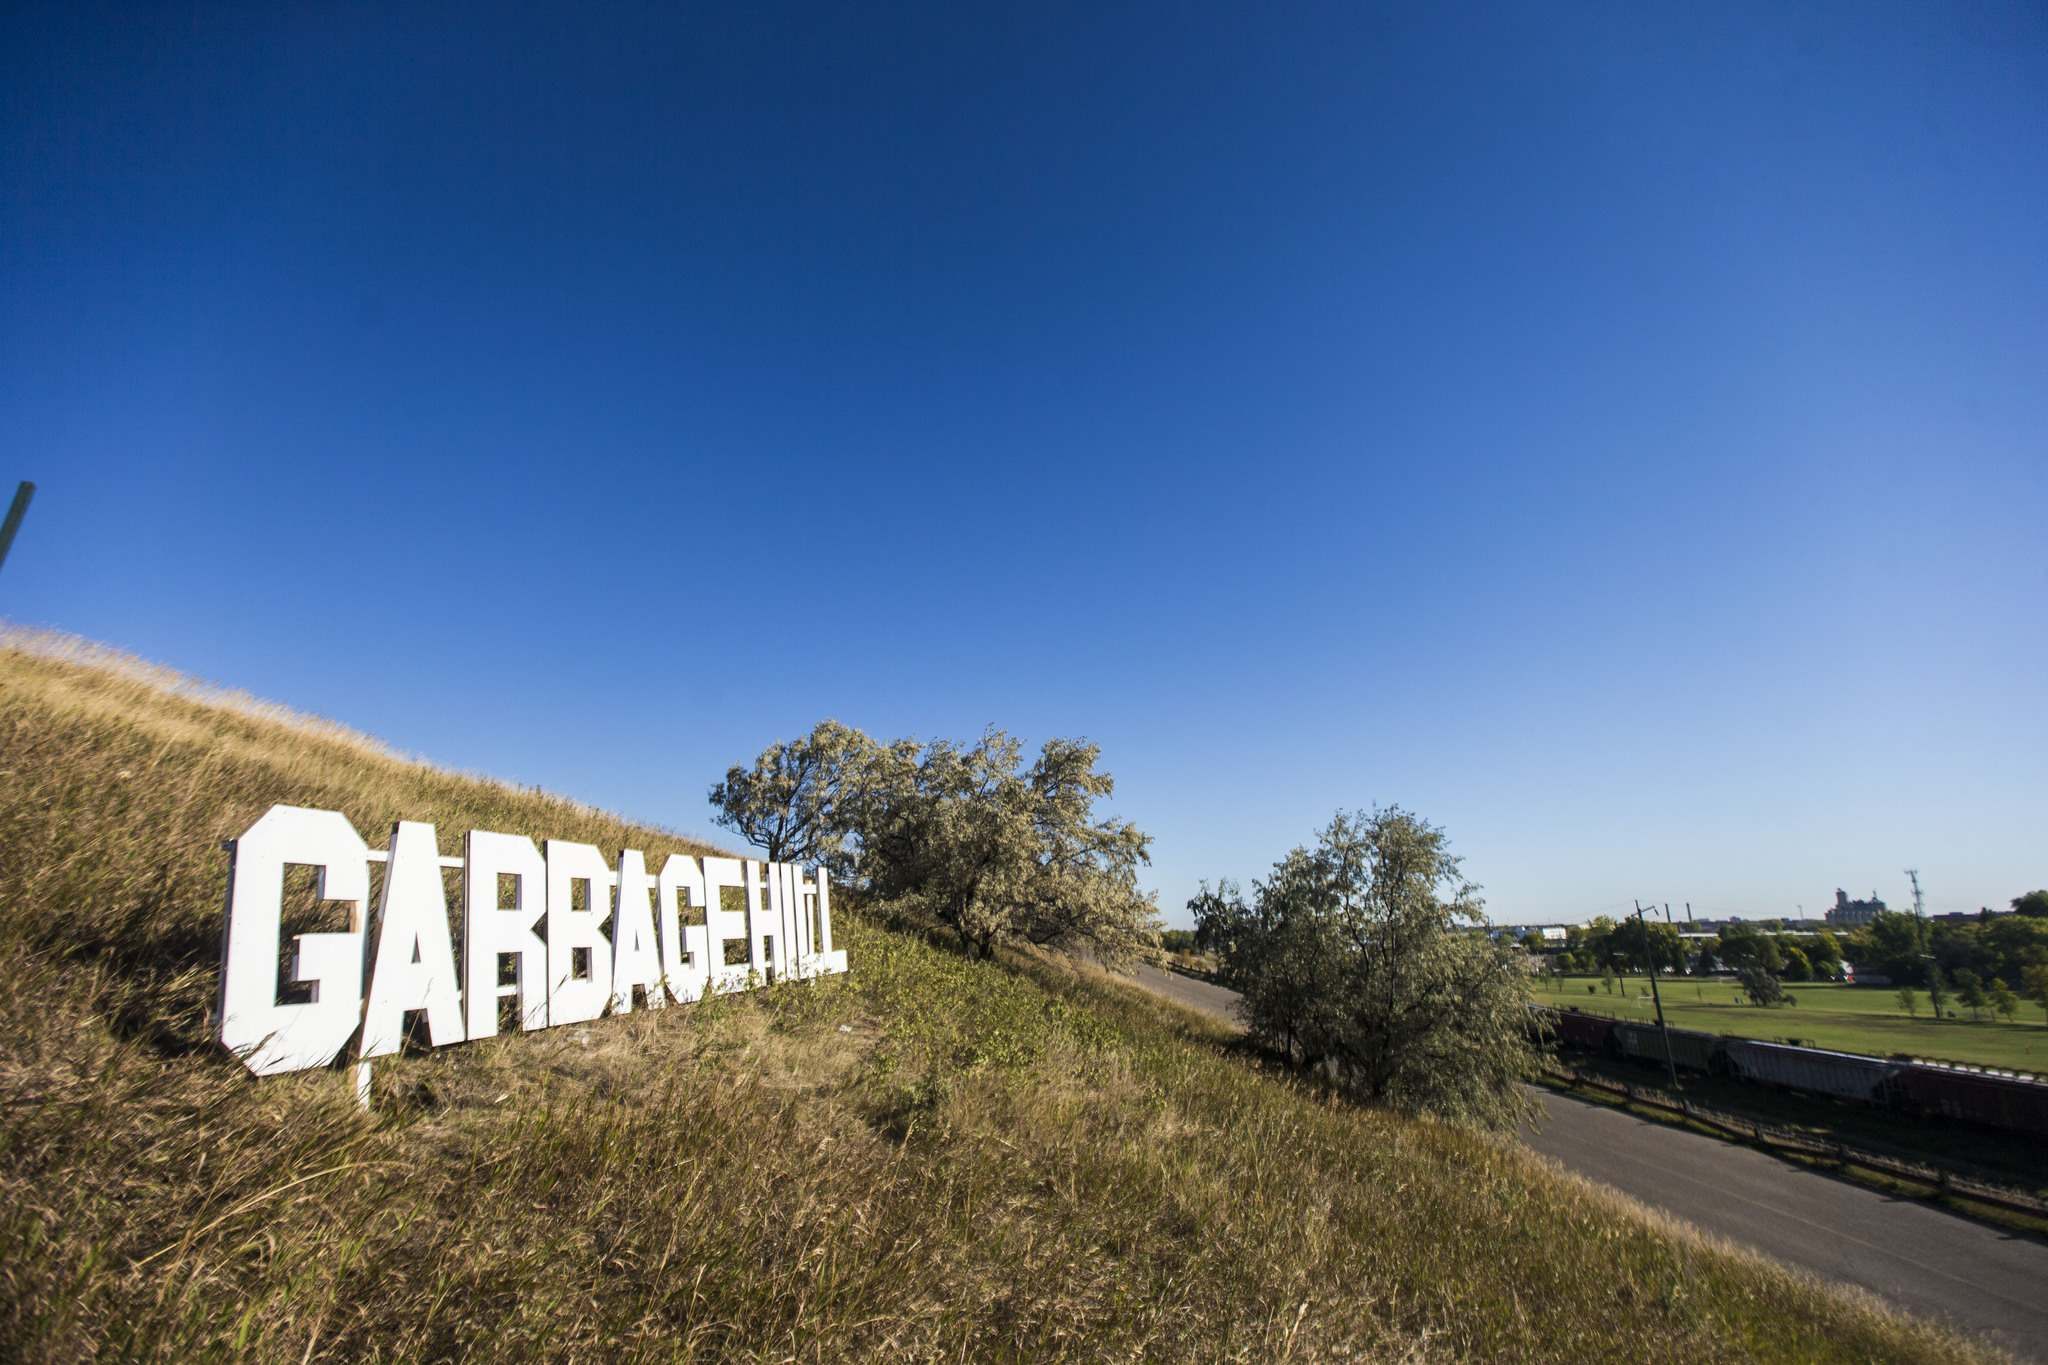 A Hollywood-esque sign on Garbage Hill was taken down by the city Monday hours after it appeared. (Mikaela Mackenzie / Winnipeg Free Press)</p>